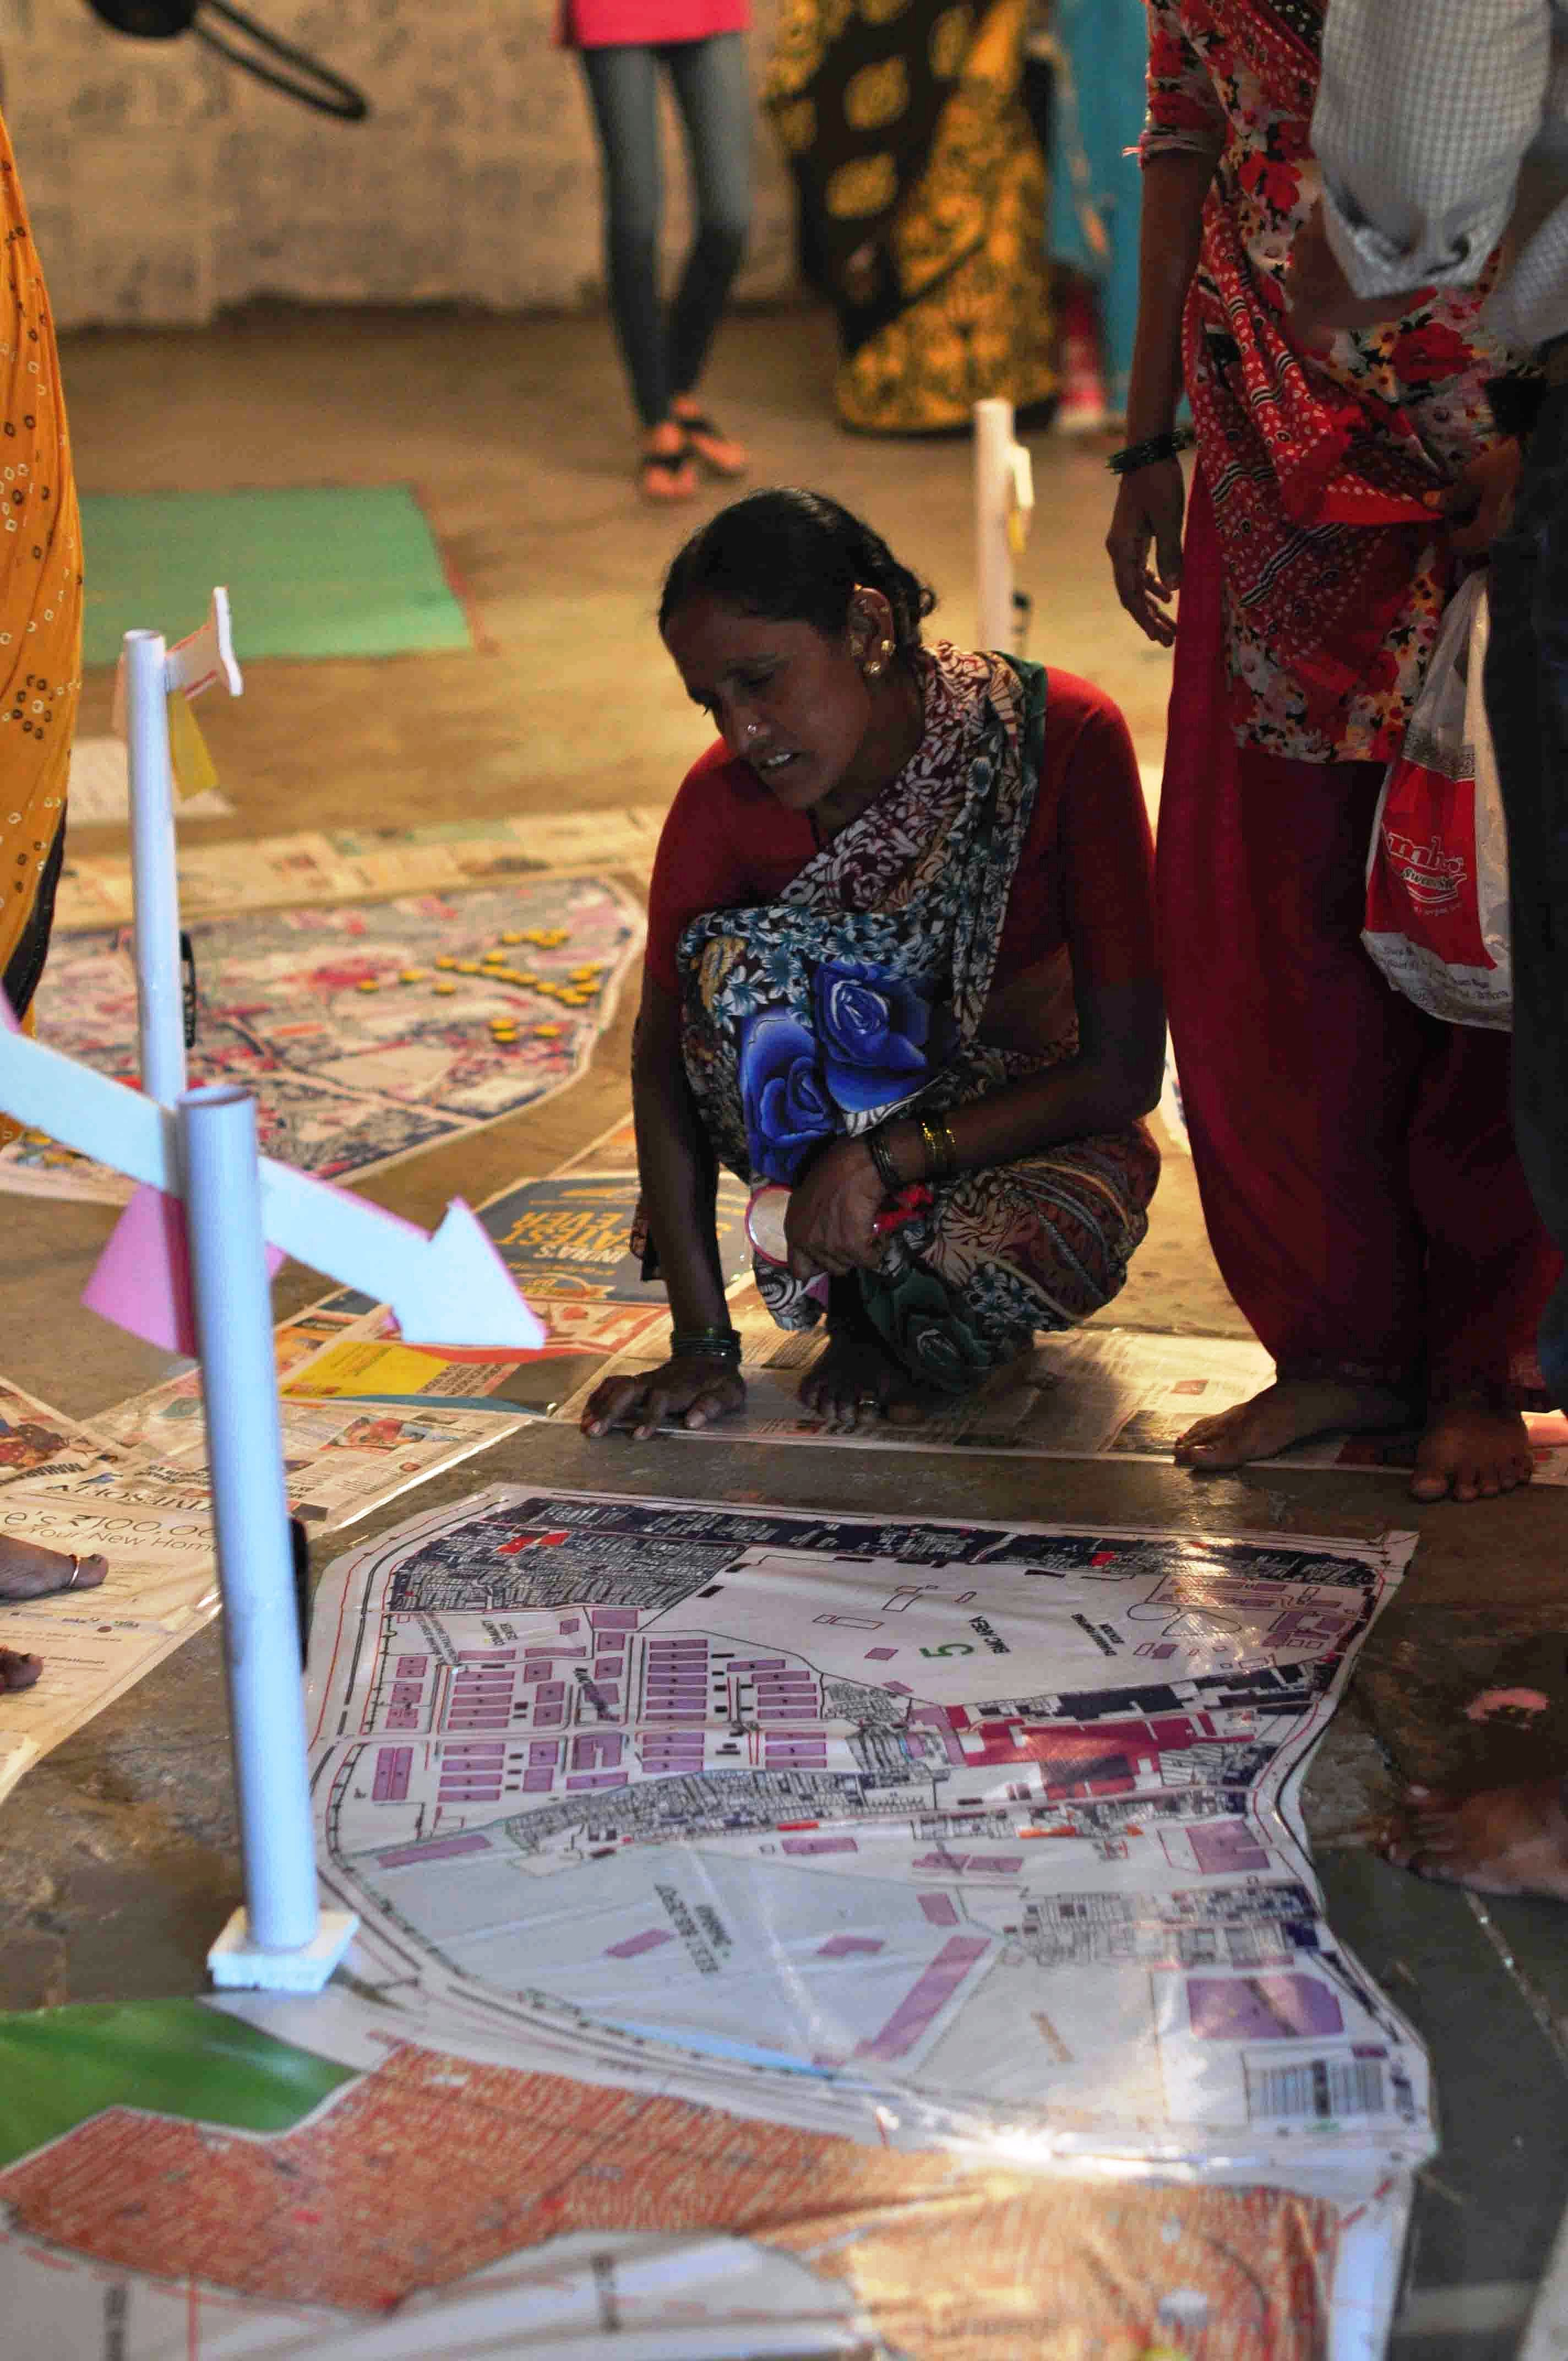 Women residents of Dharavi in Mumbai, with basic knowhow of embroidery stitched together 'Map the Hurt' with discarded denim that marks out areas in their sprawling slum where women often encounter abuse and violence. (Courtesy: SNEHA)